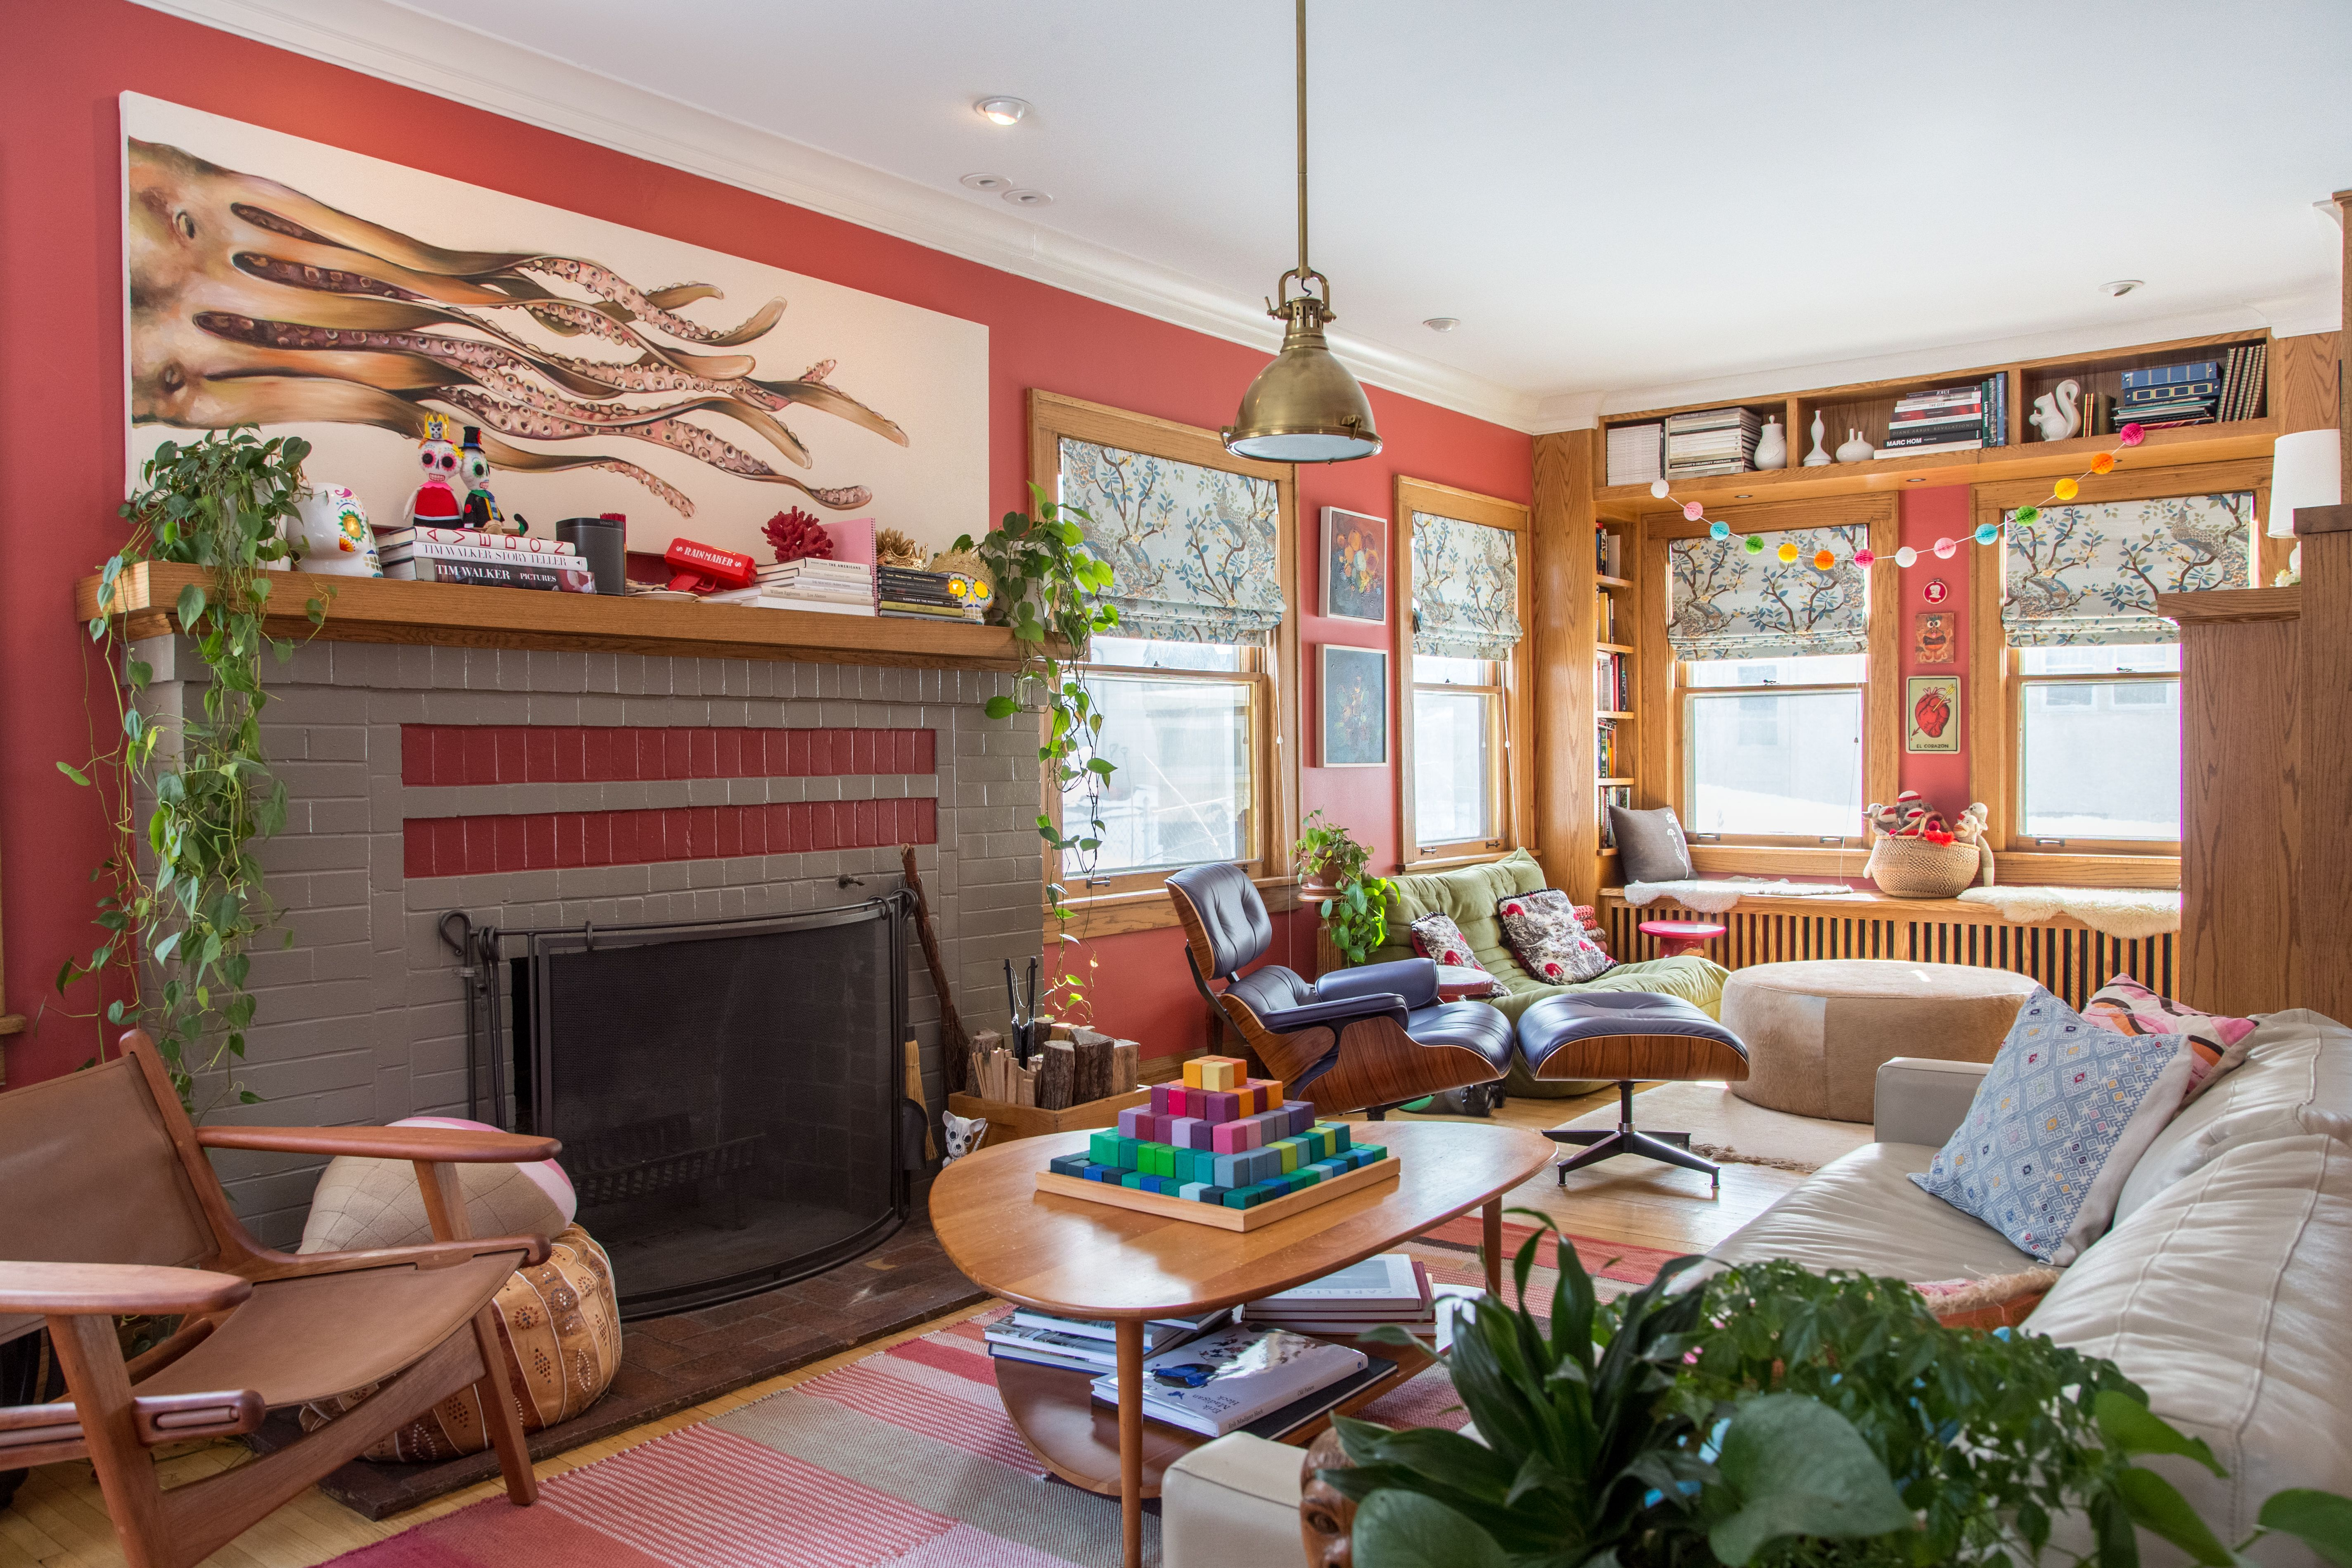 5 Rooms That Make The Case For Red Walls With Images Quality Living Room Furniture Classic Living Room Living Room Furniture